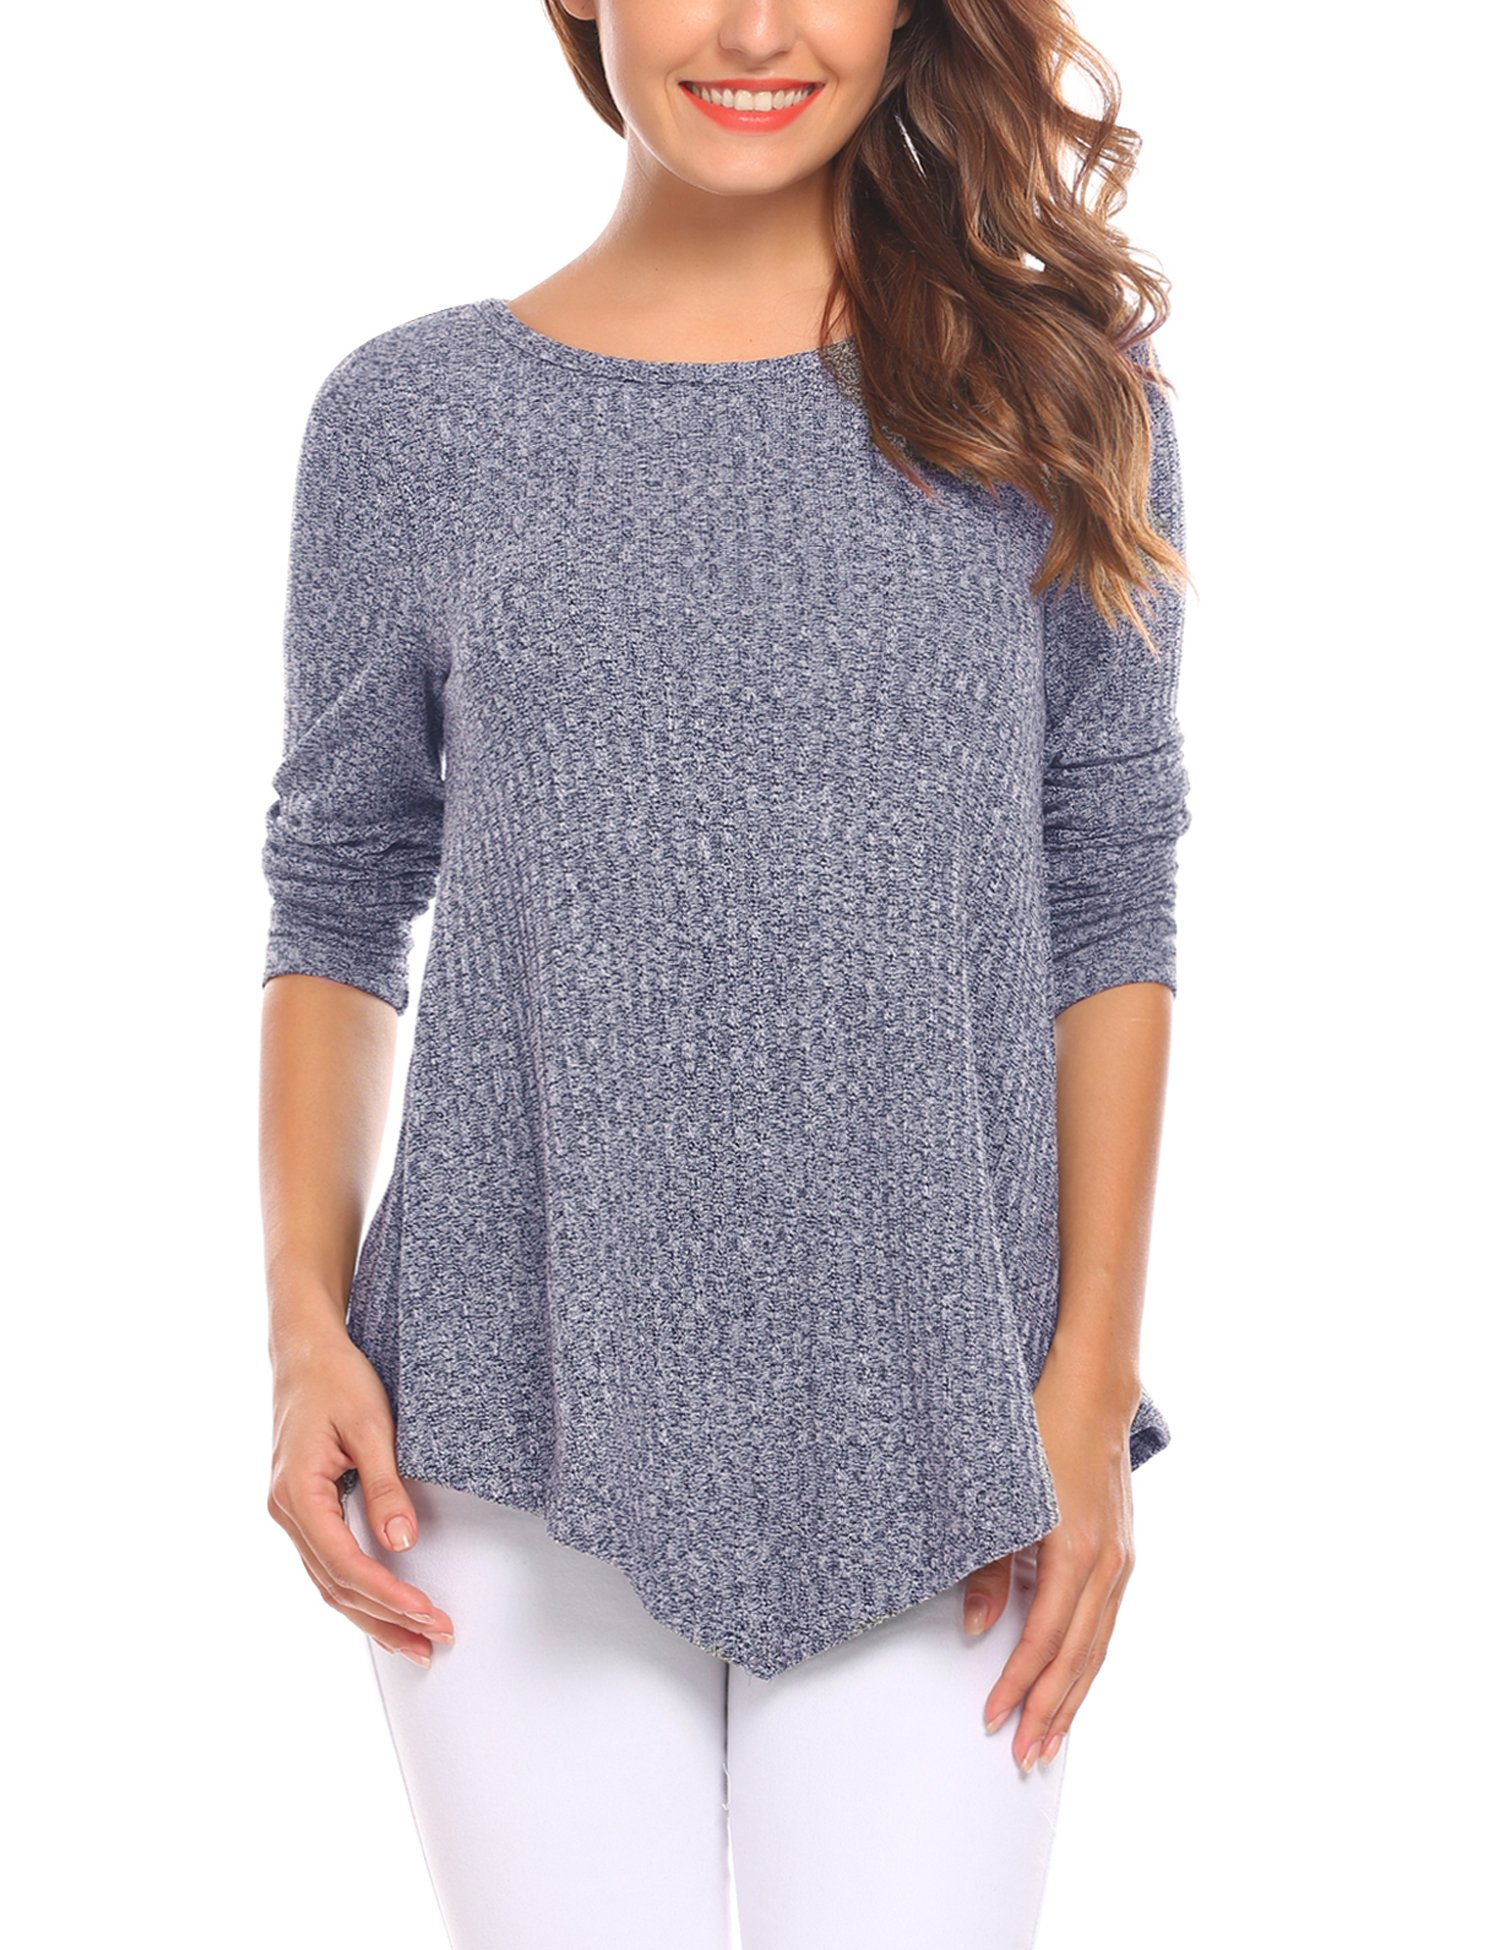 Zeagoo Women's Knitted Long Sleeve Sweater Asymmetrical Hem Pullover Tunic Tops (Navy Blue, XXL)